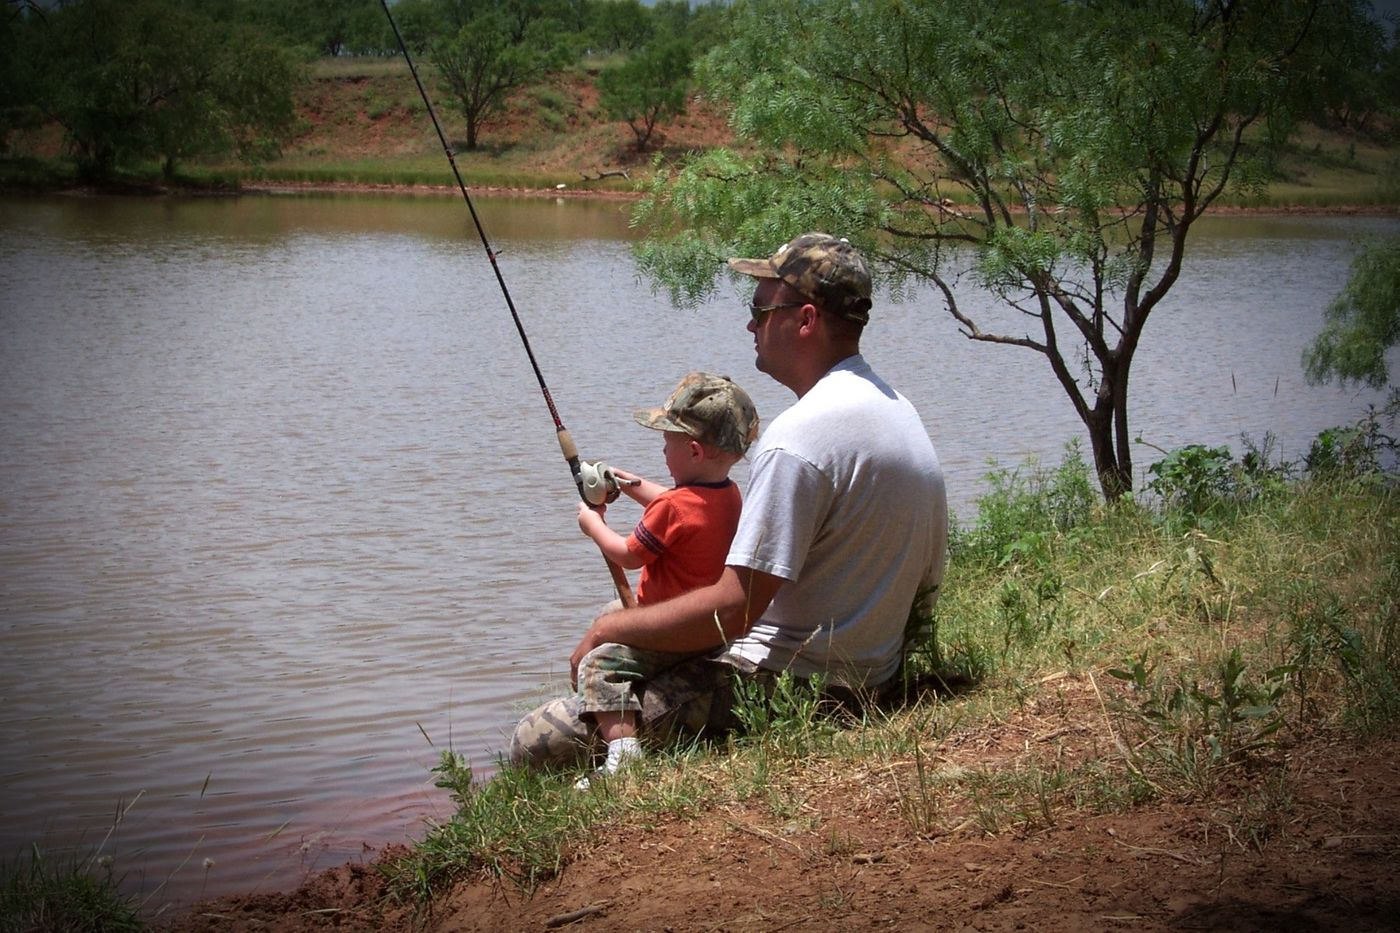 father-and-son-fishing vignette